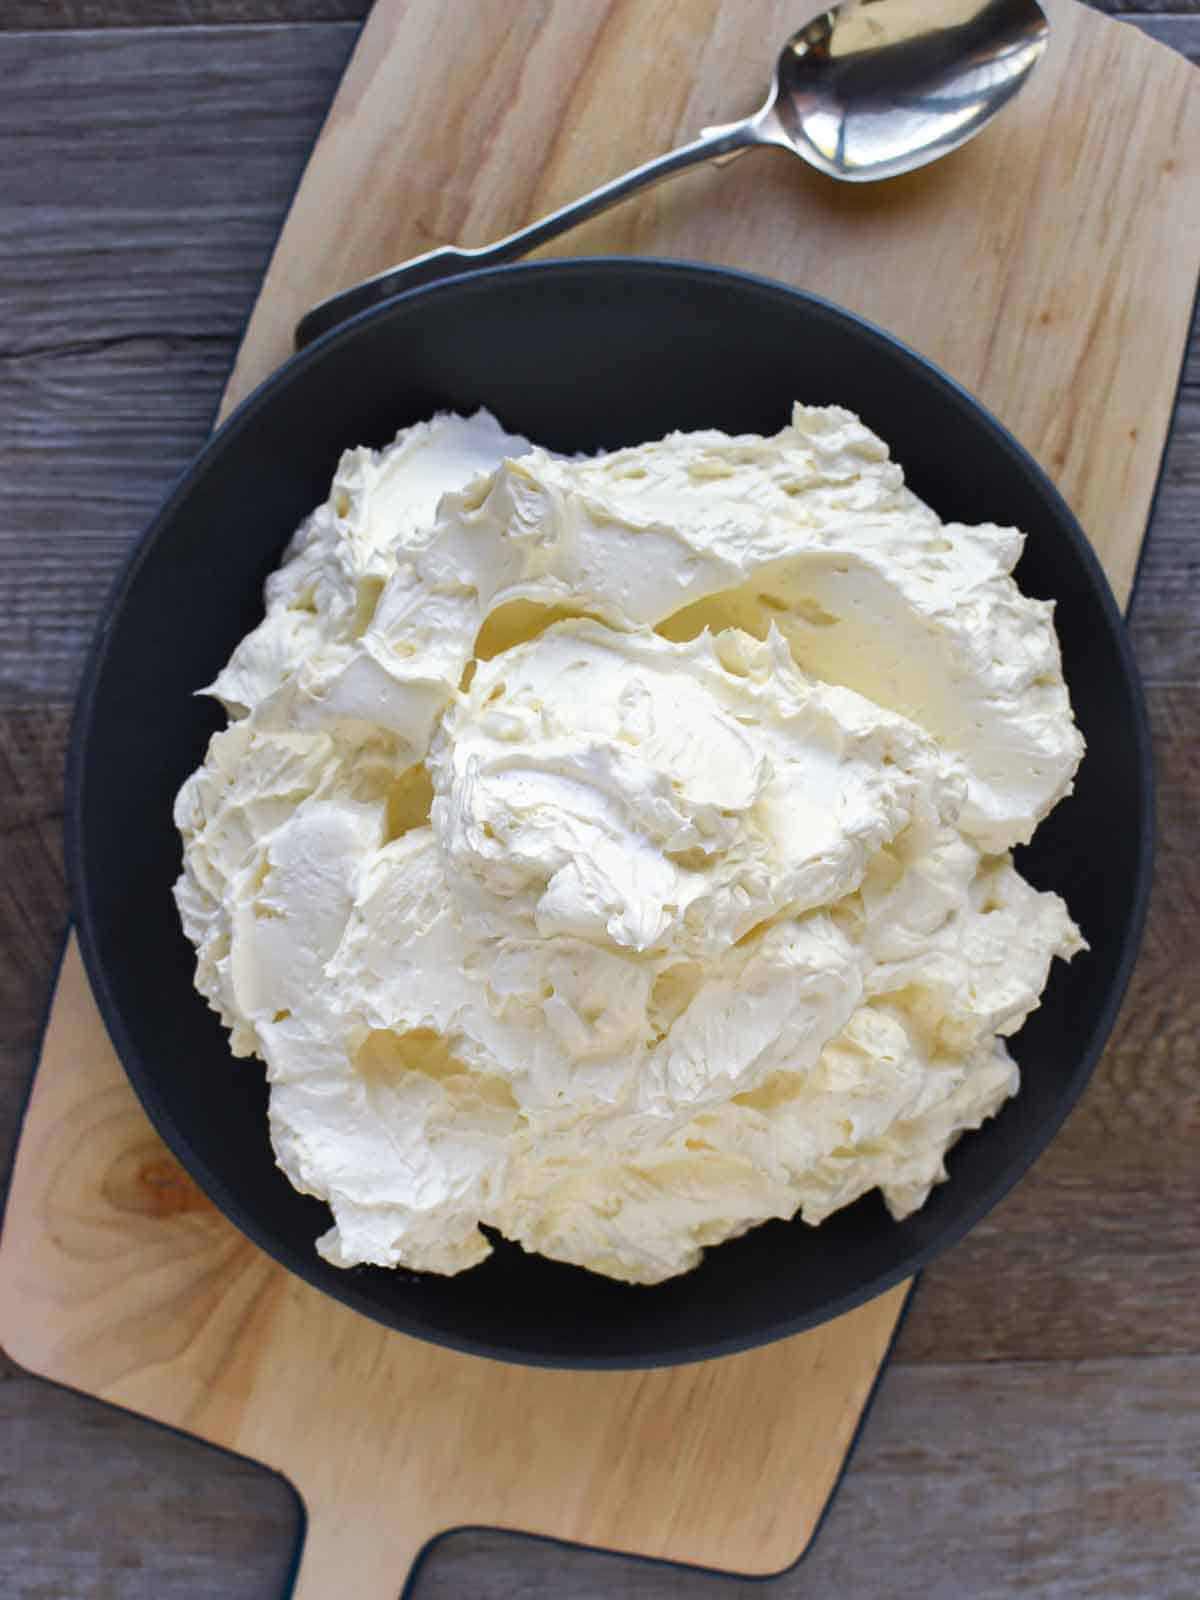 Italian meringue buttercream in black bowl viewed from above